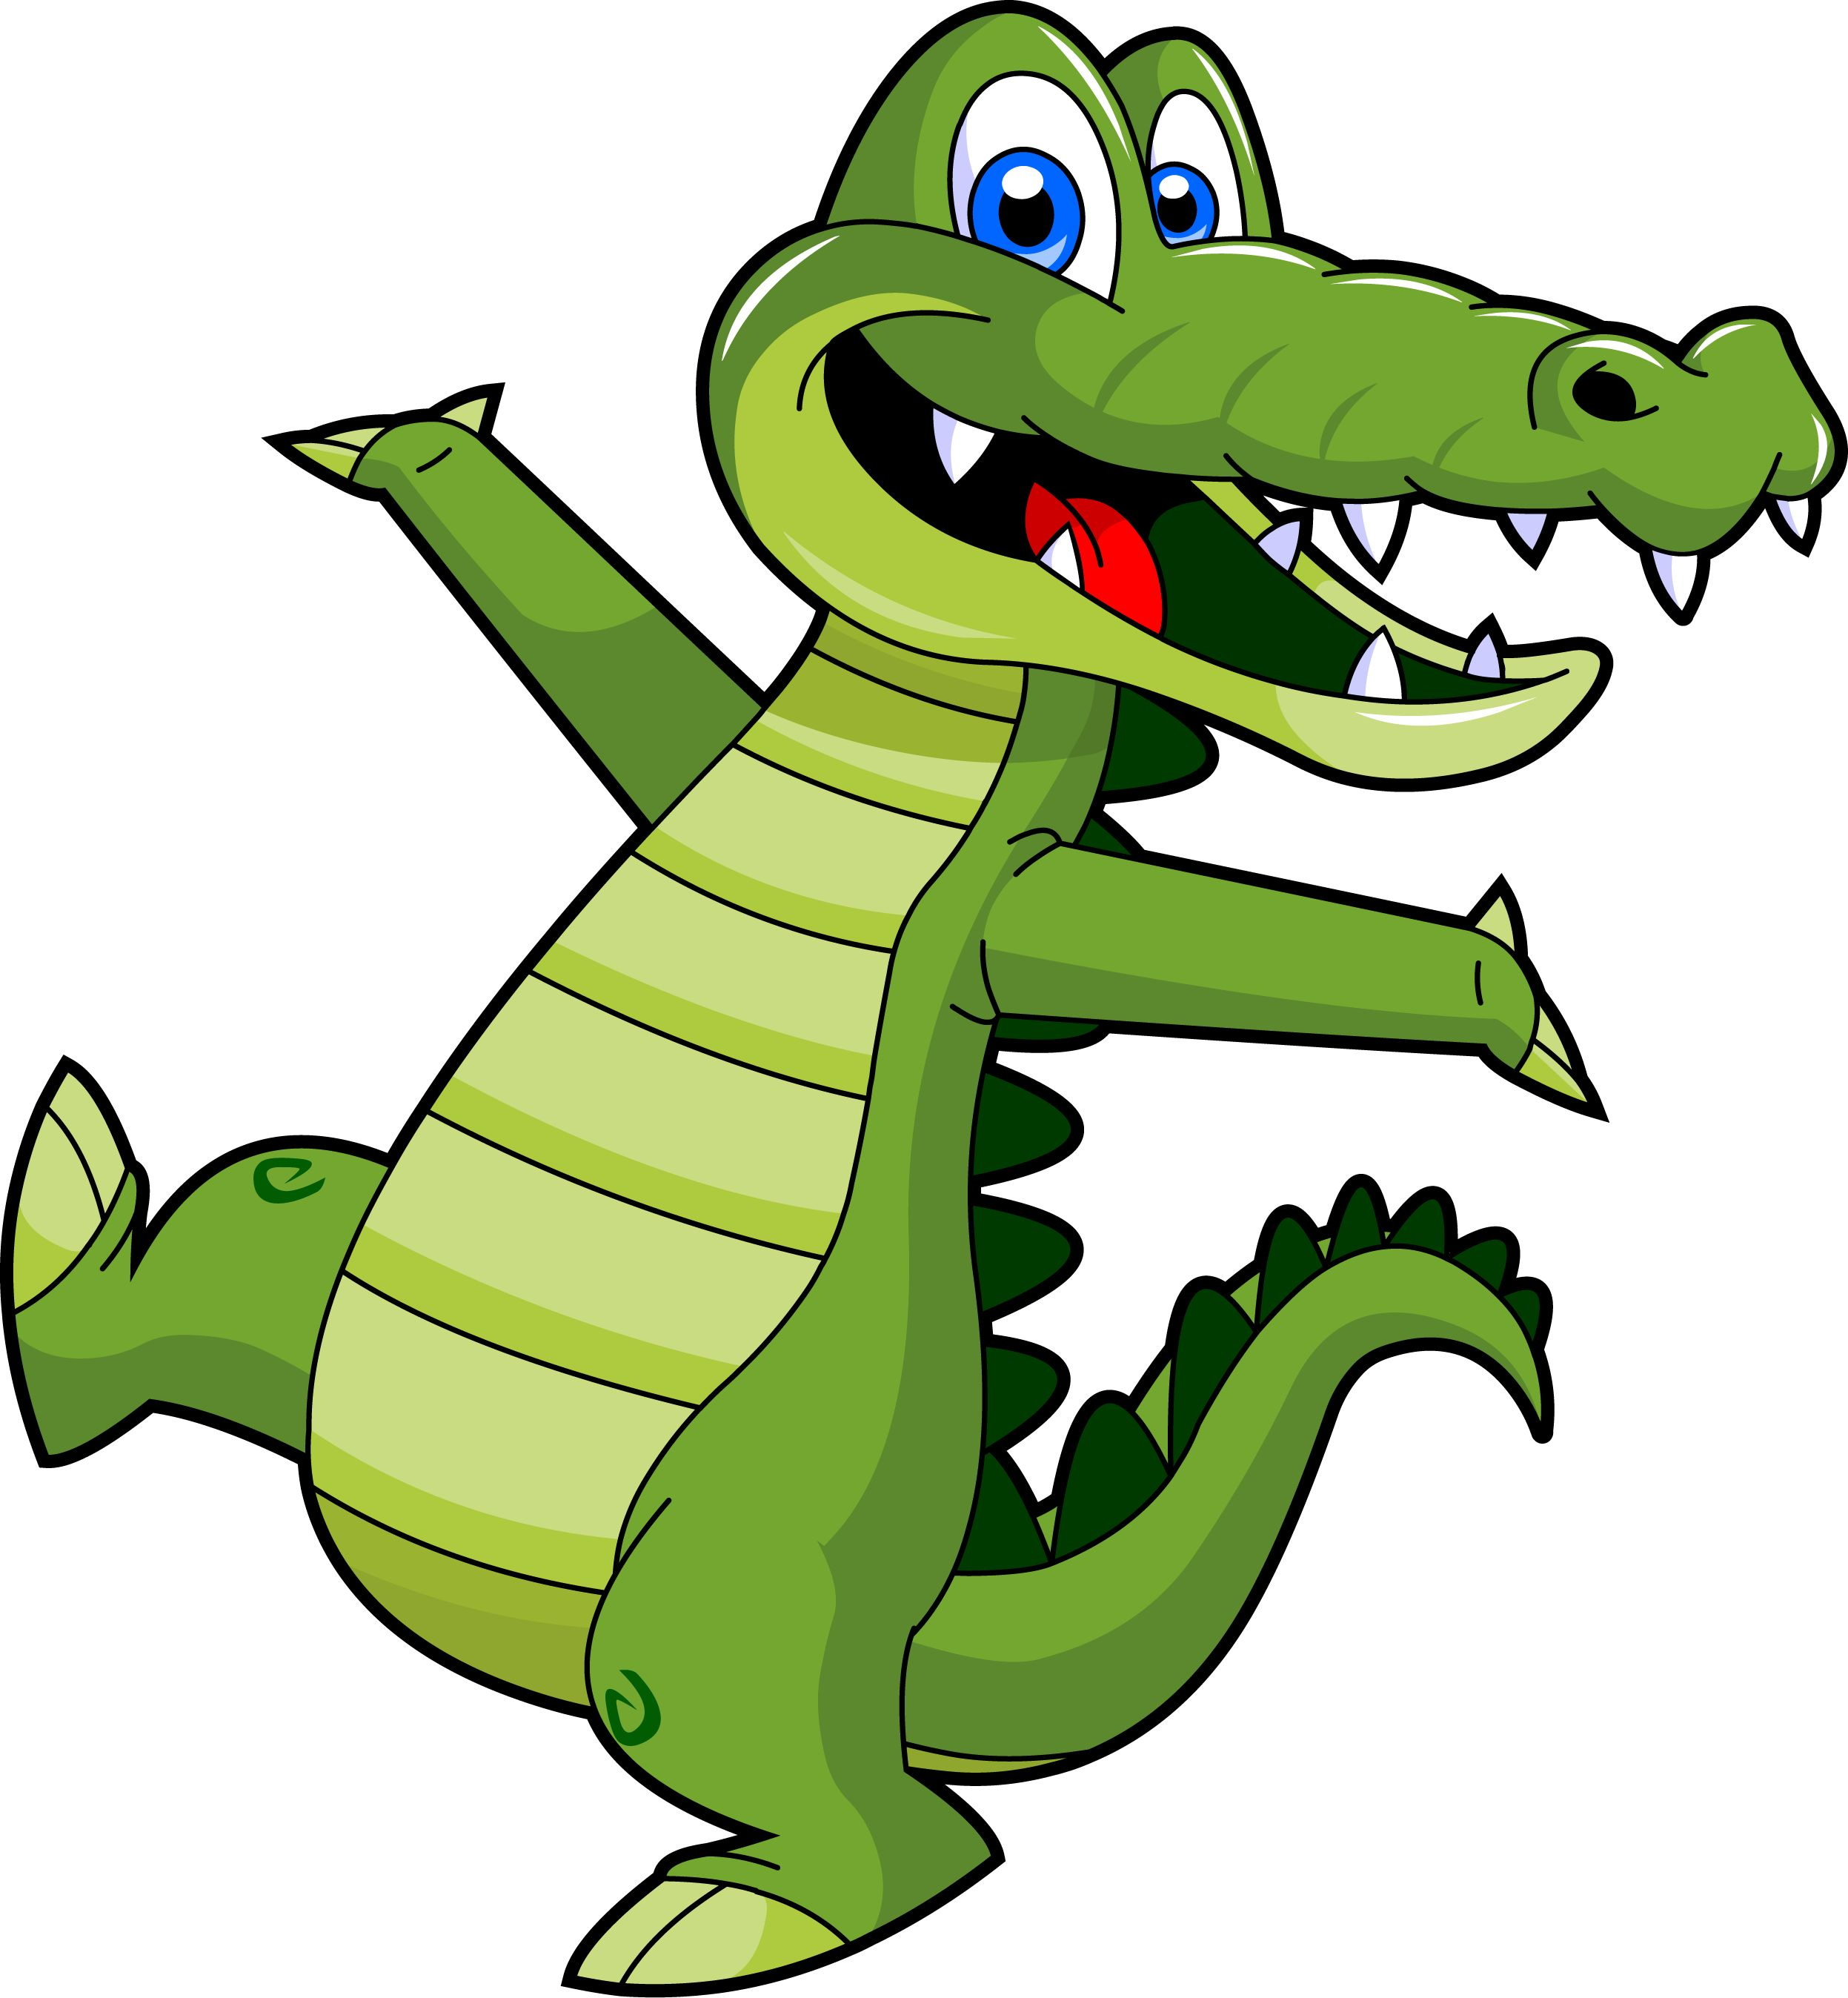 Sick clipart sick mother Images alligator baby 2 images